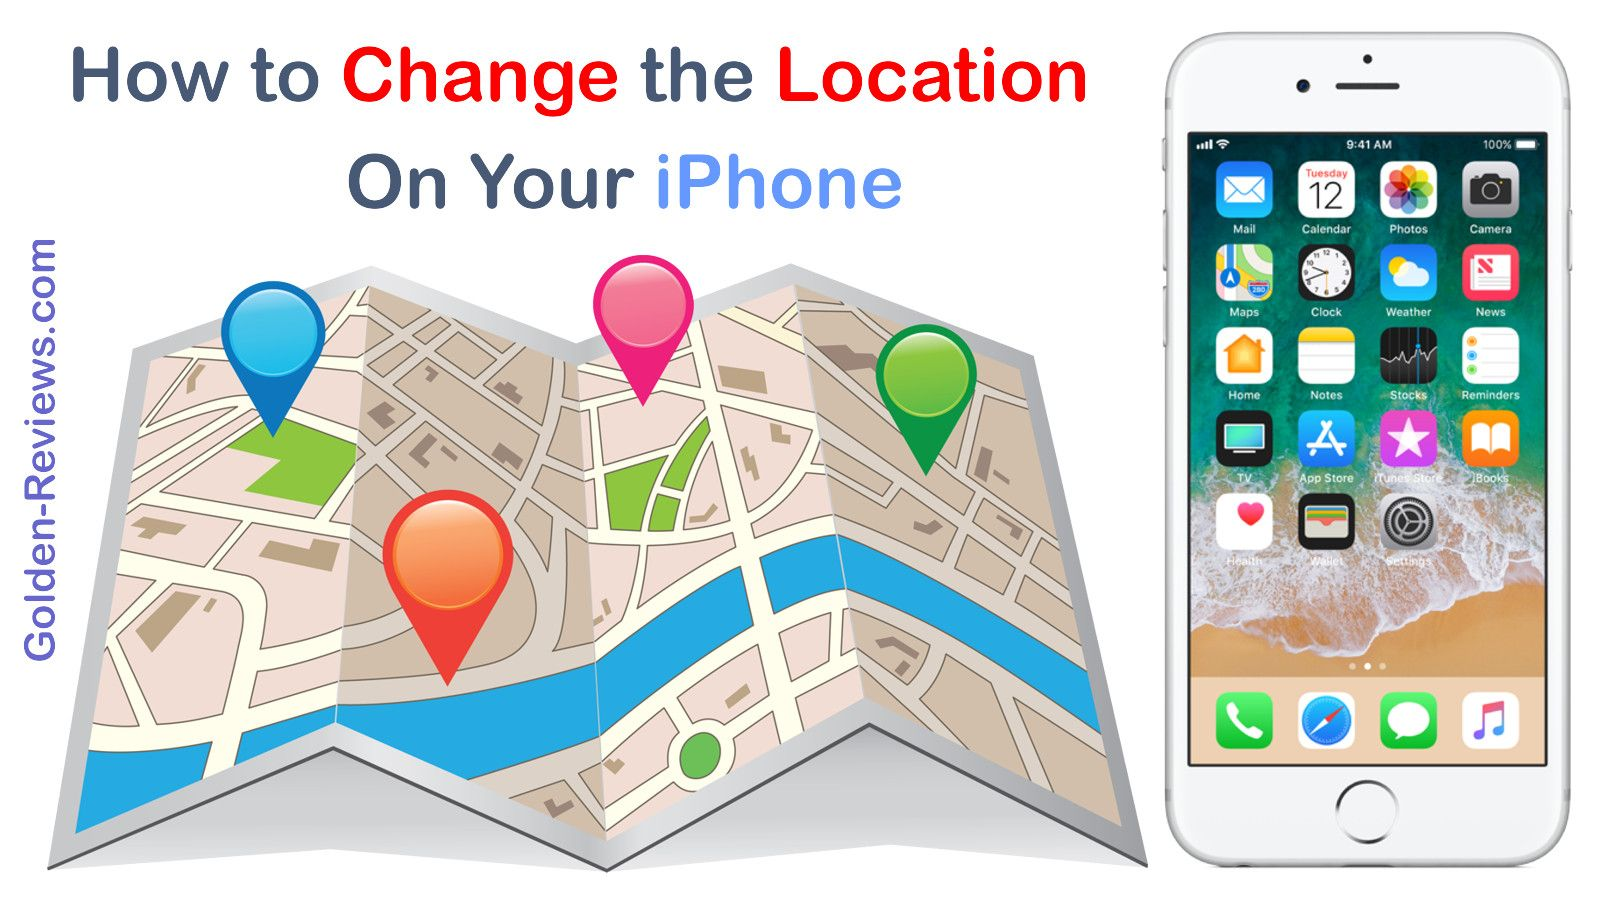 a08e10d684b4e2db5a9e10cf277f3ca0 - How To Change Location On Iphone Vpn